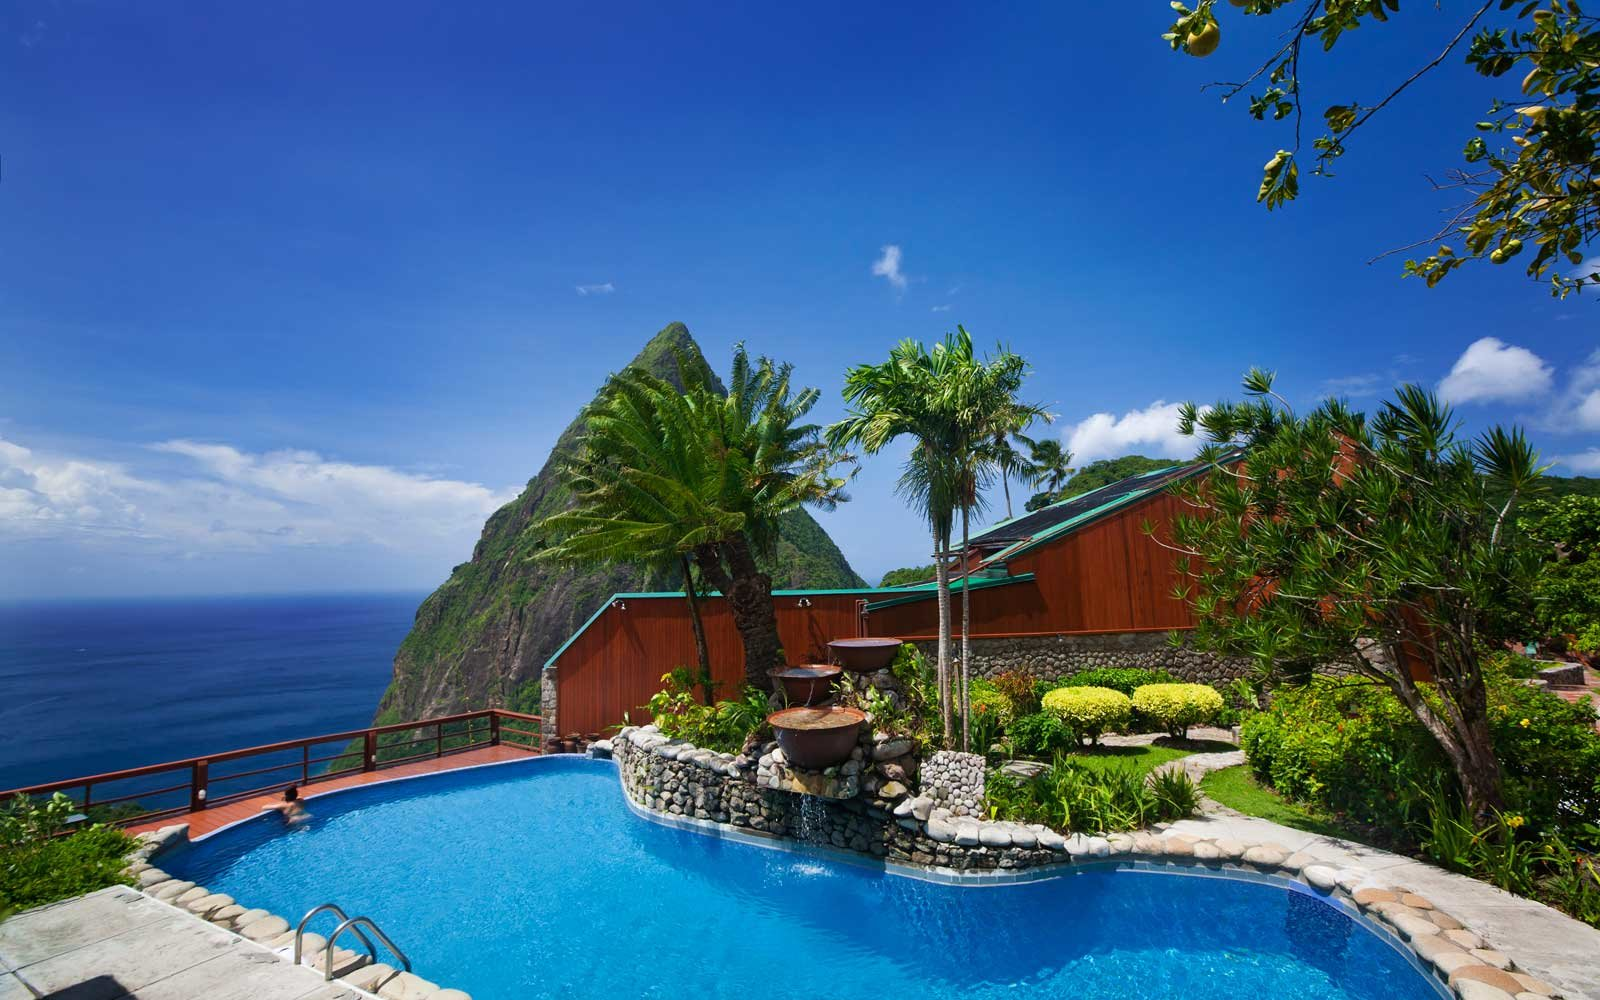 5. Ladera Resort in St. Lucia